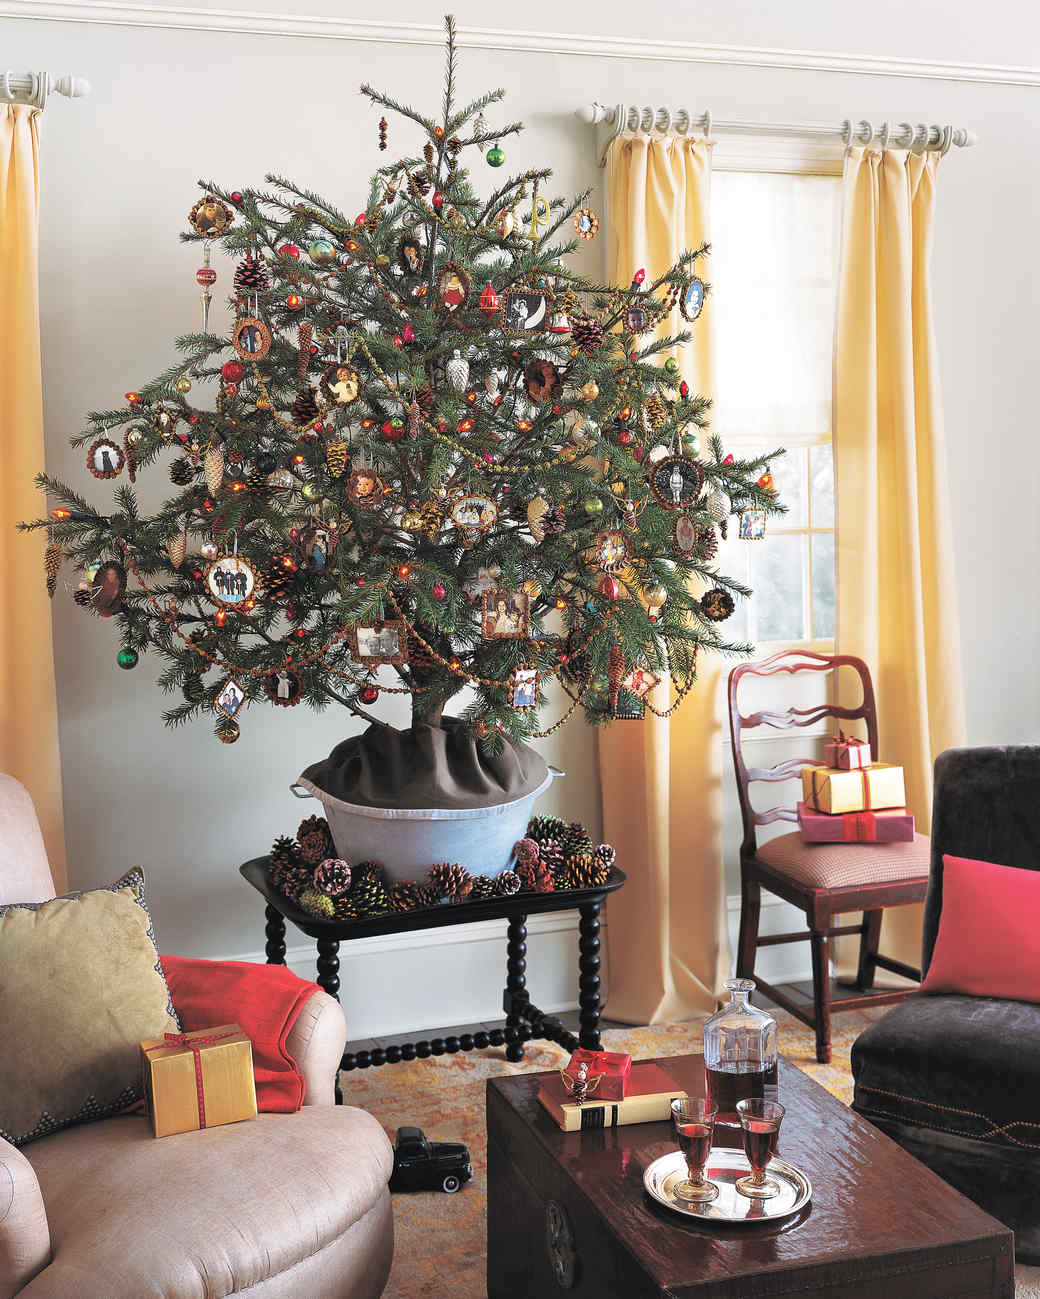 Decoration Design: 25 Creative Christmas Tree Decorating Ideas